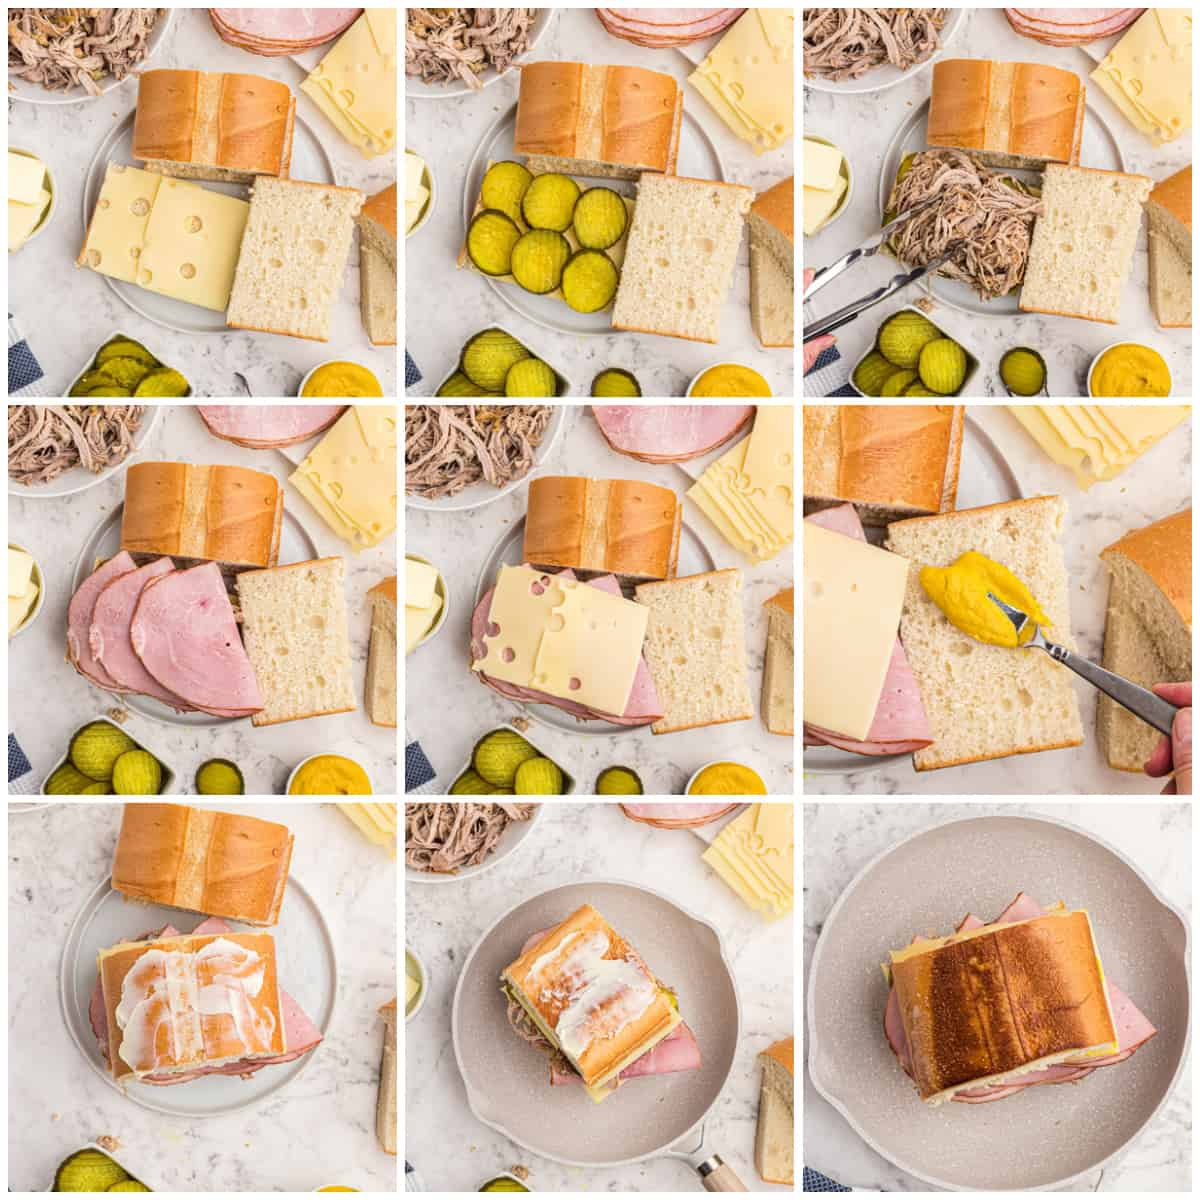 Step by step photos on how to make a Cuban Sandwich Recipe